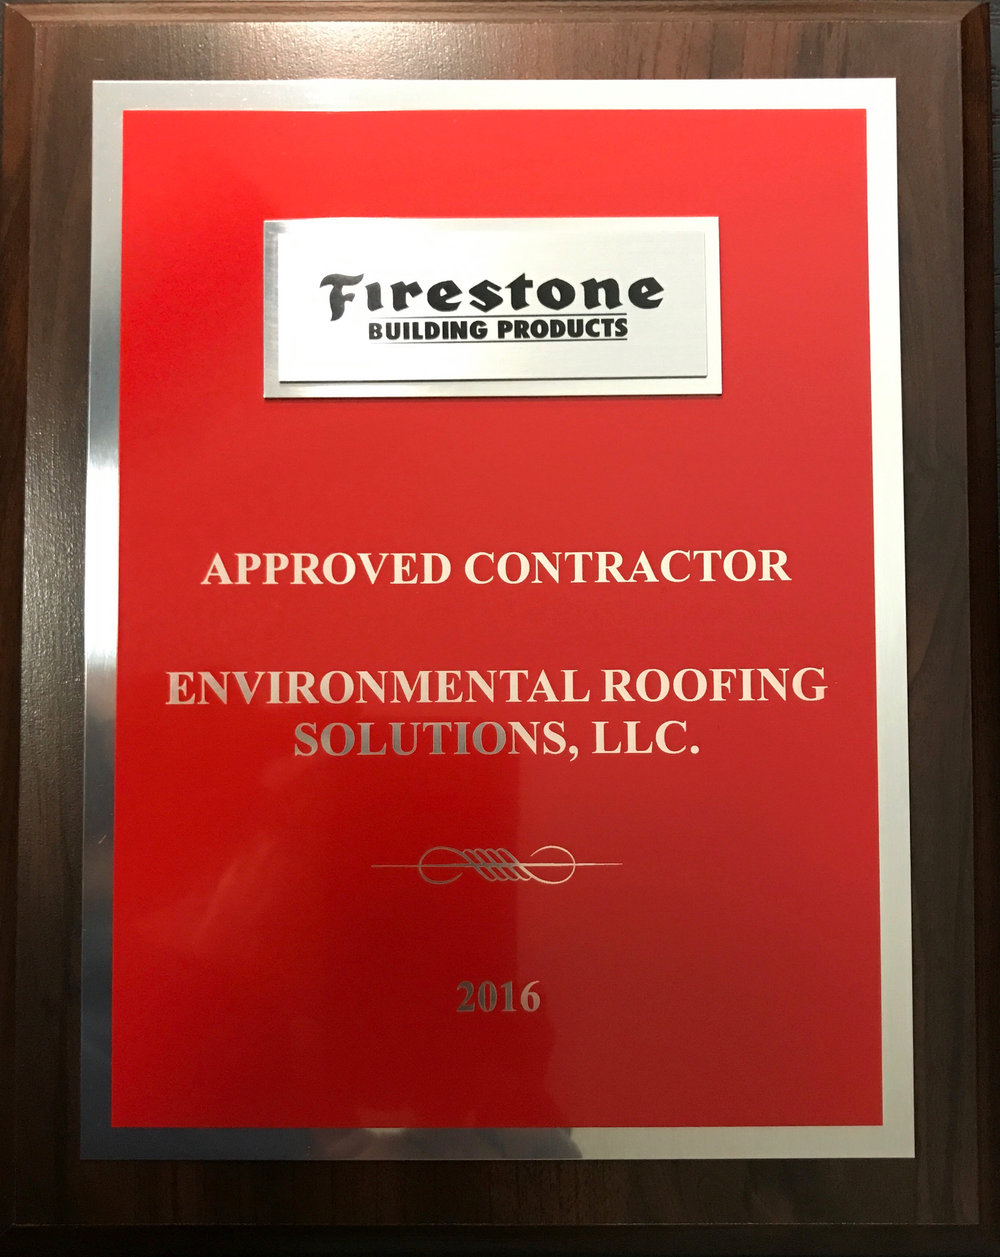 Fireston approved contractor.jpg